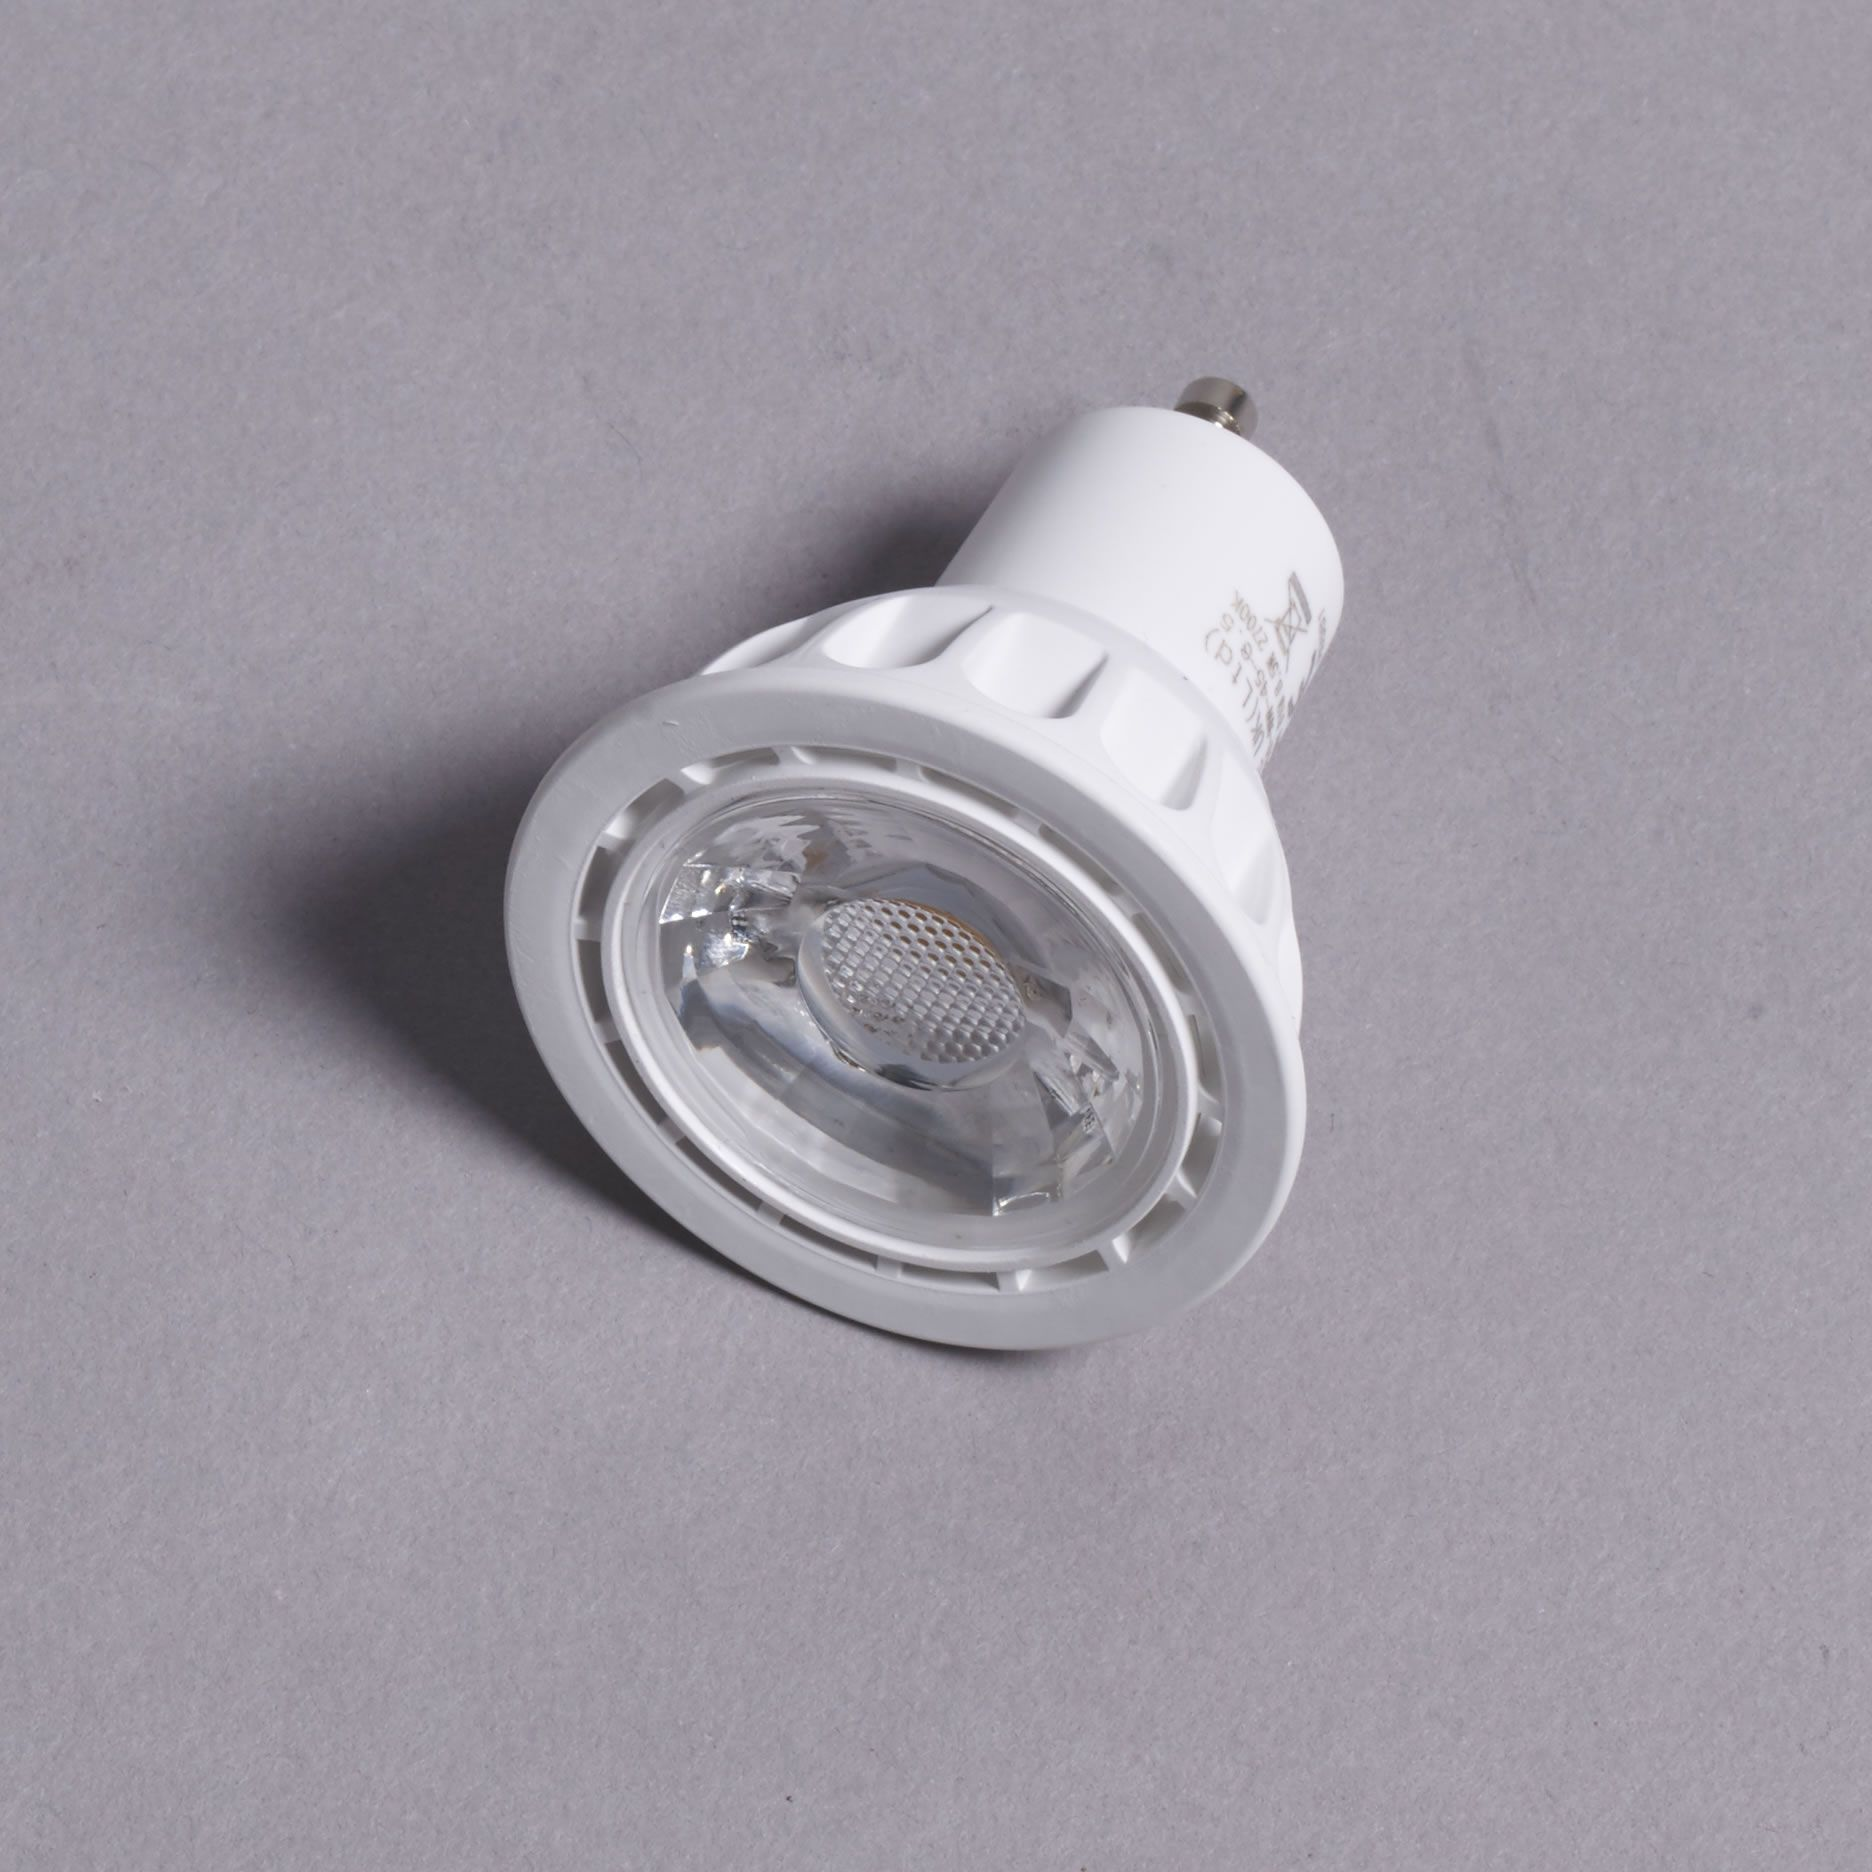 LED Replacement for halogen lamps, LED MR16 GU10 - Dimmable ...